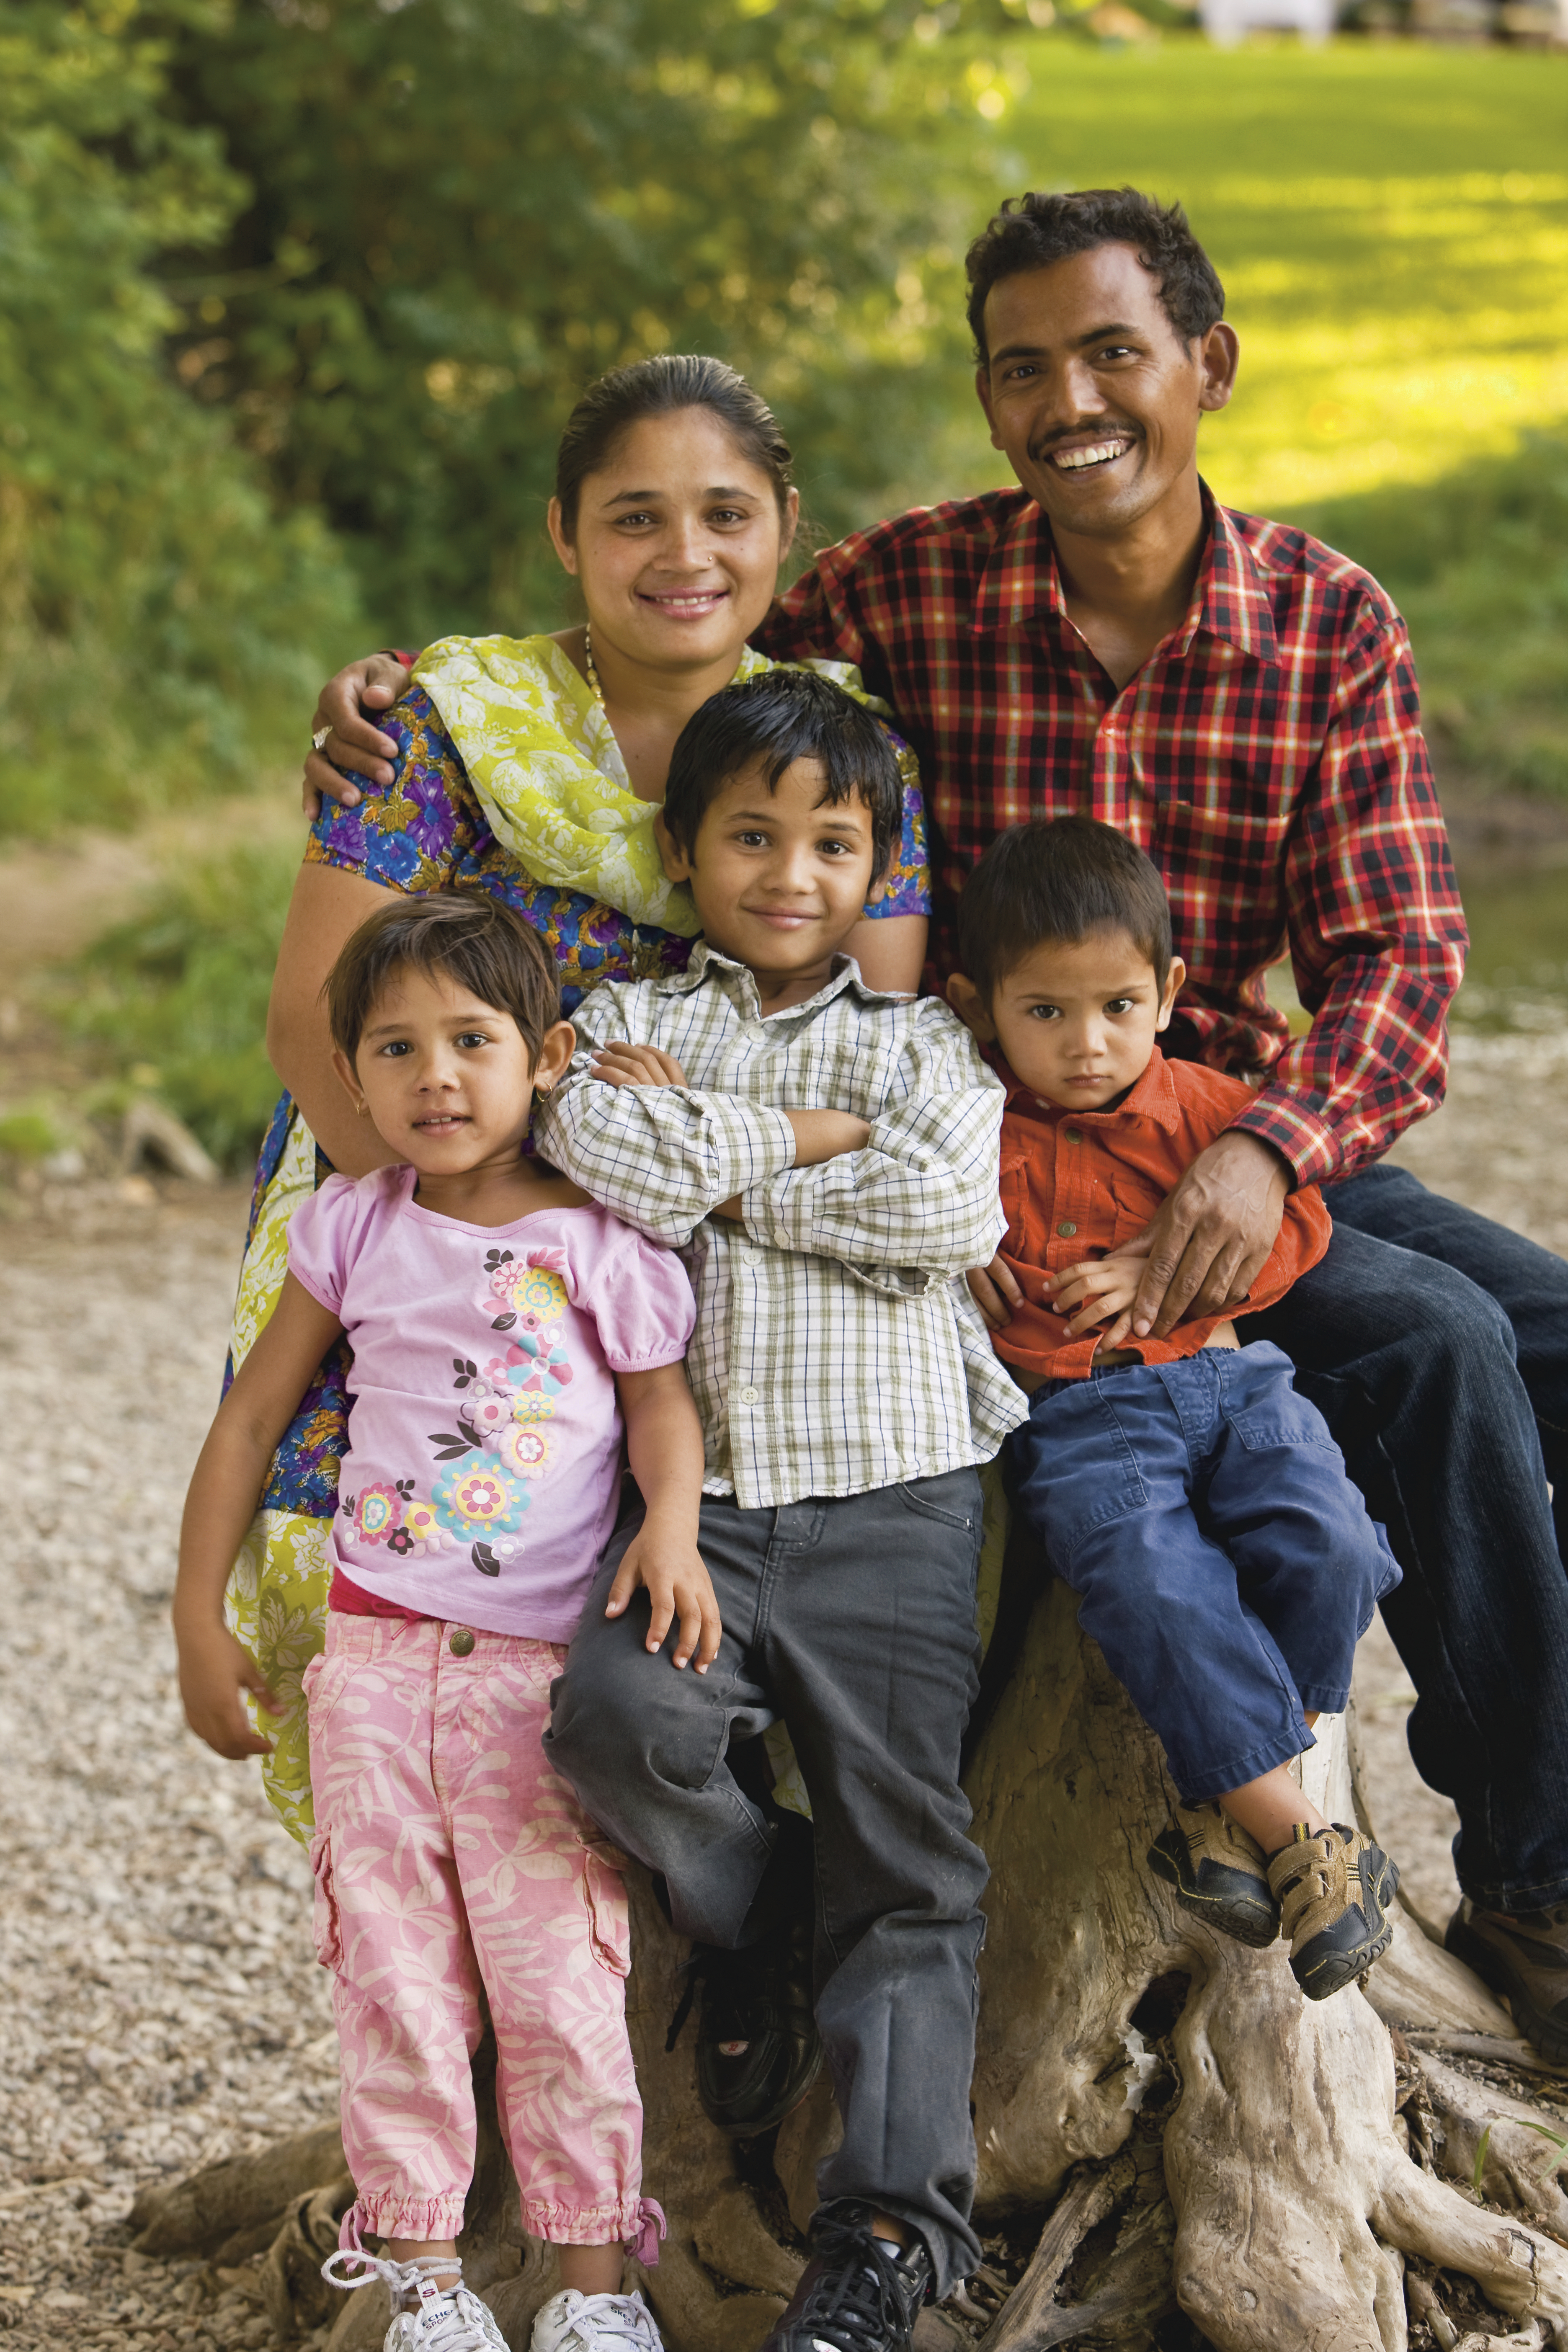 A portrait of a family from Nepal.